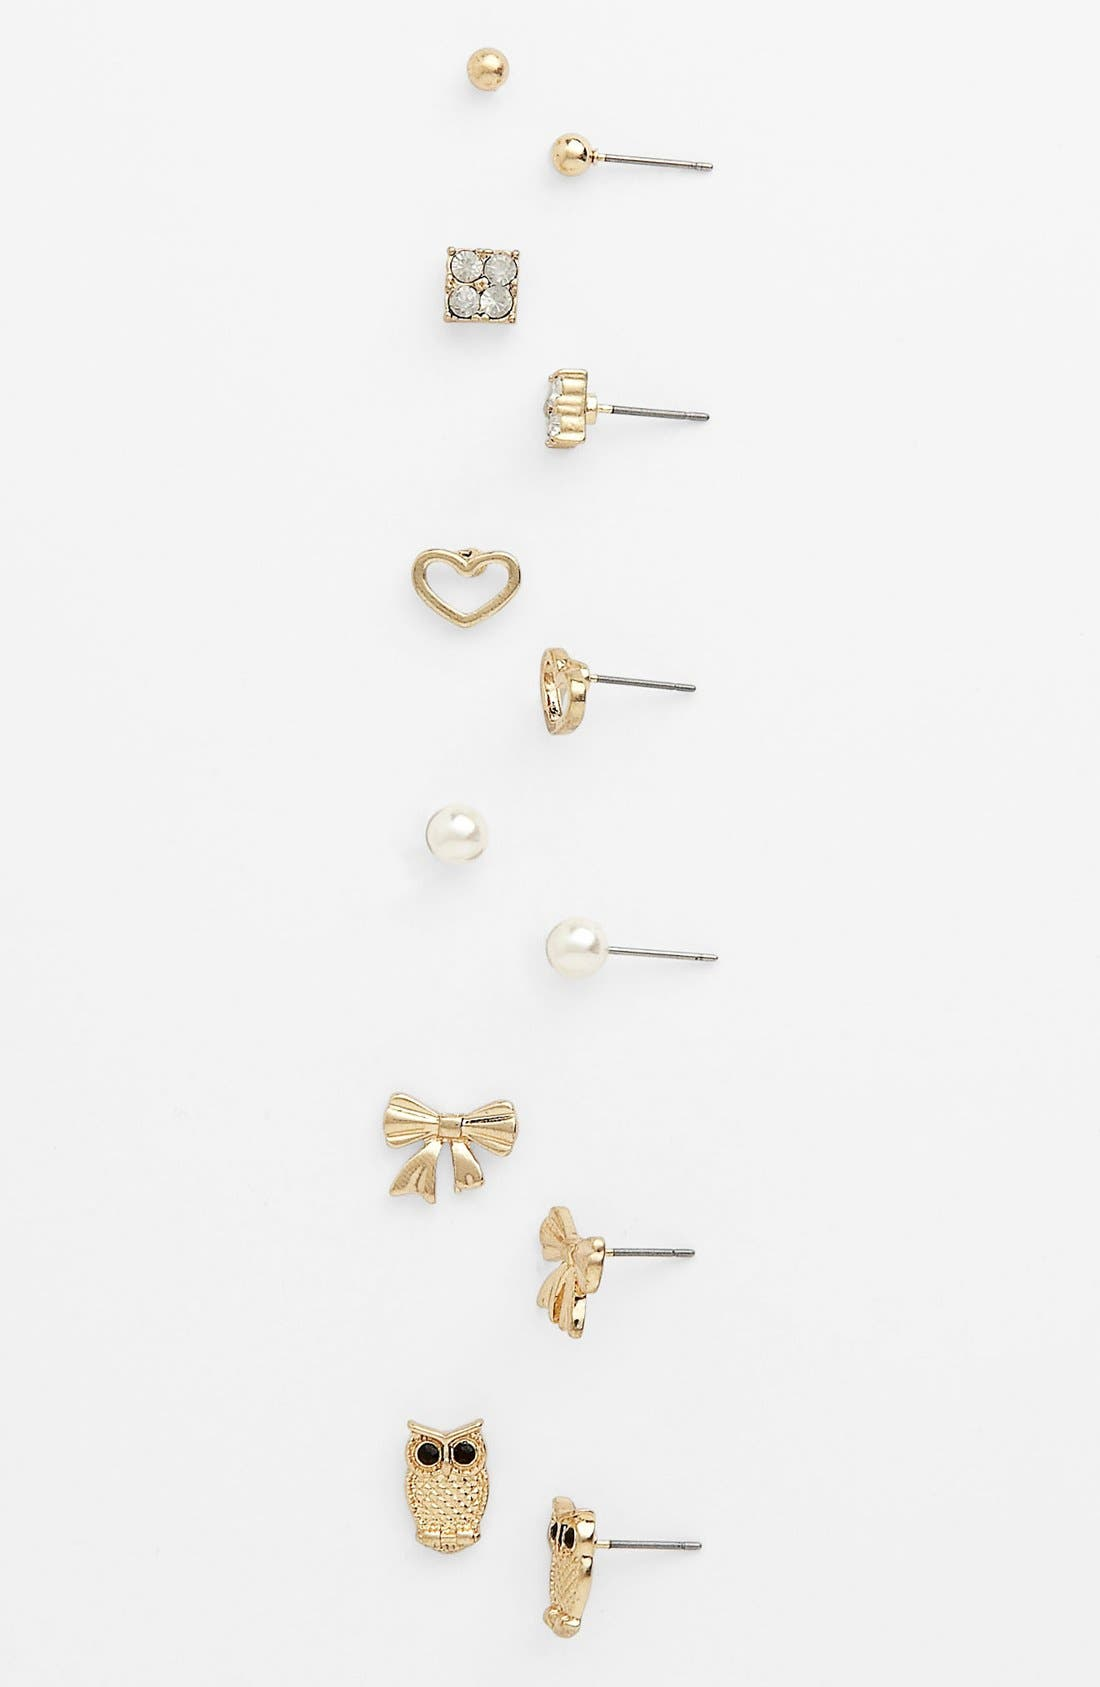 Main Image - Carole Stud Earrings (Set of 6)